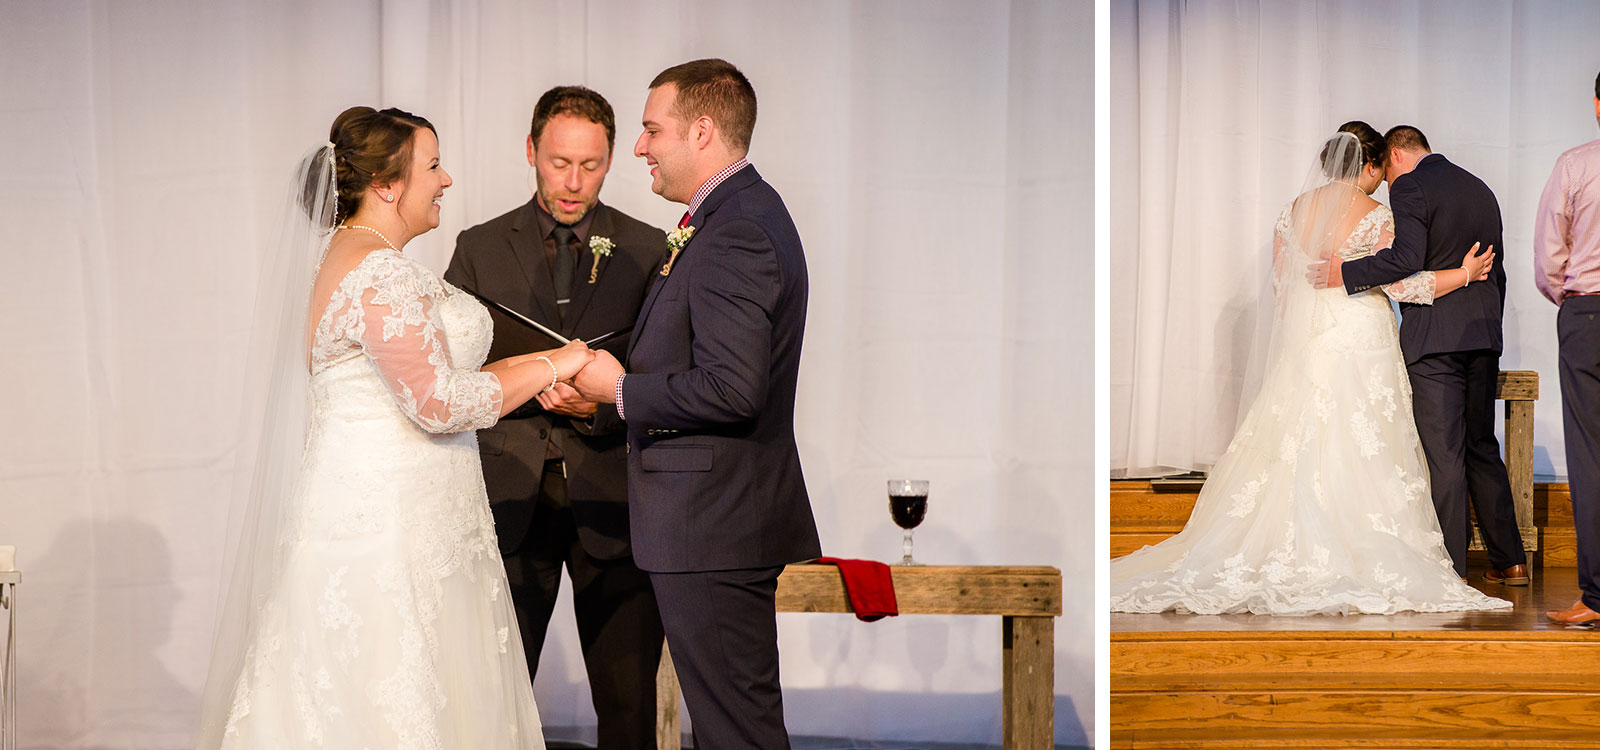 Eric_and_Christy_Photography_Blog_Wedding_Stacey_Geoff-10-11